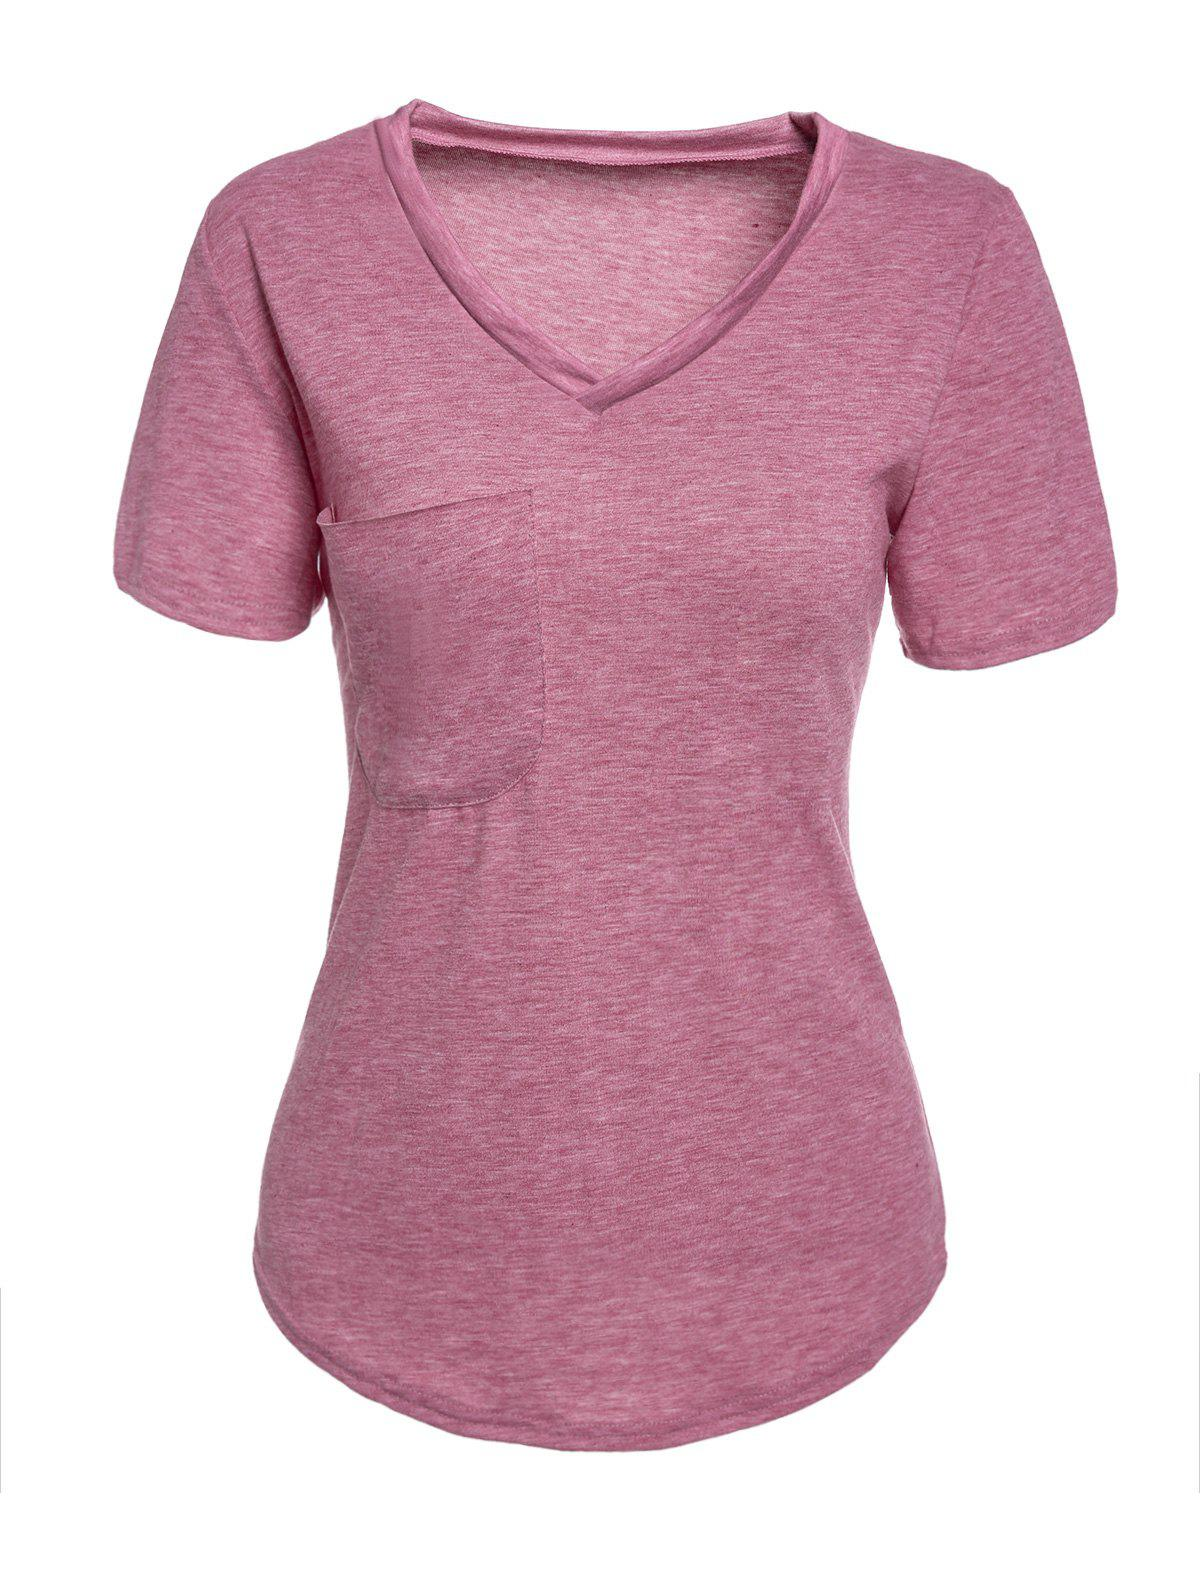 Trendy V Neck Candy Color Short Sleeve T-Shirt For Women - PURPLE S